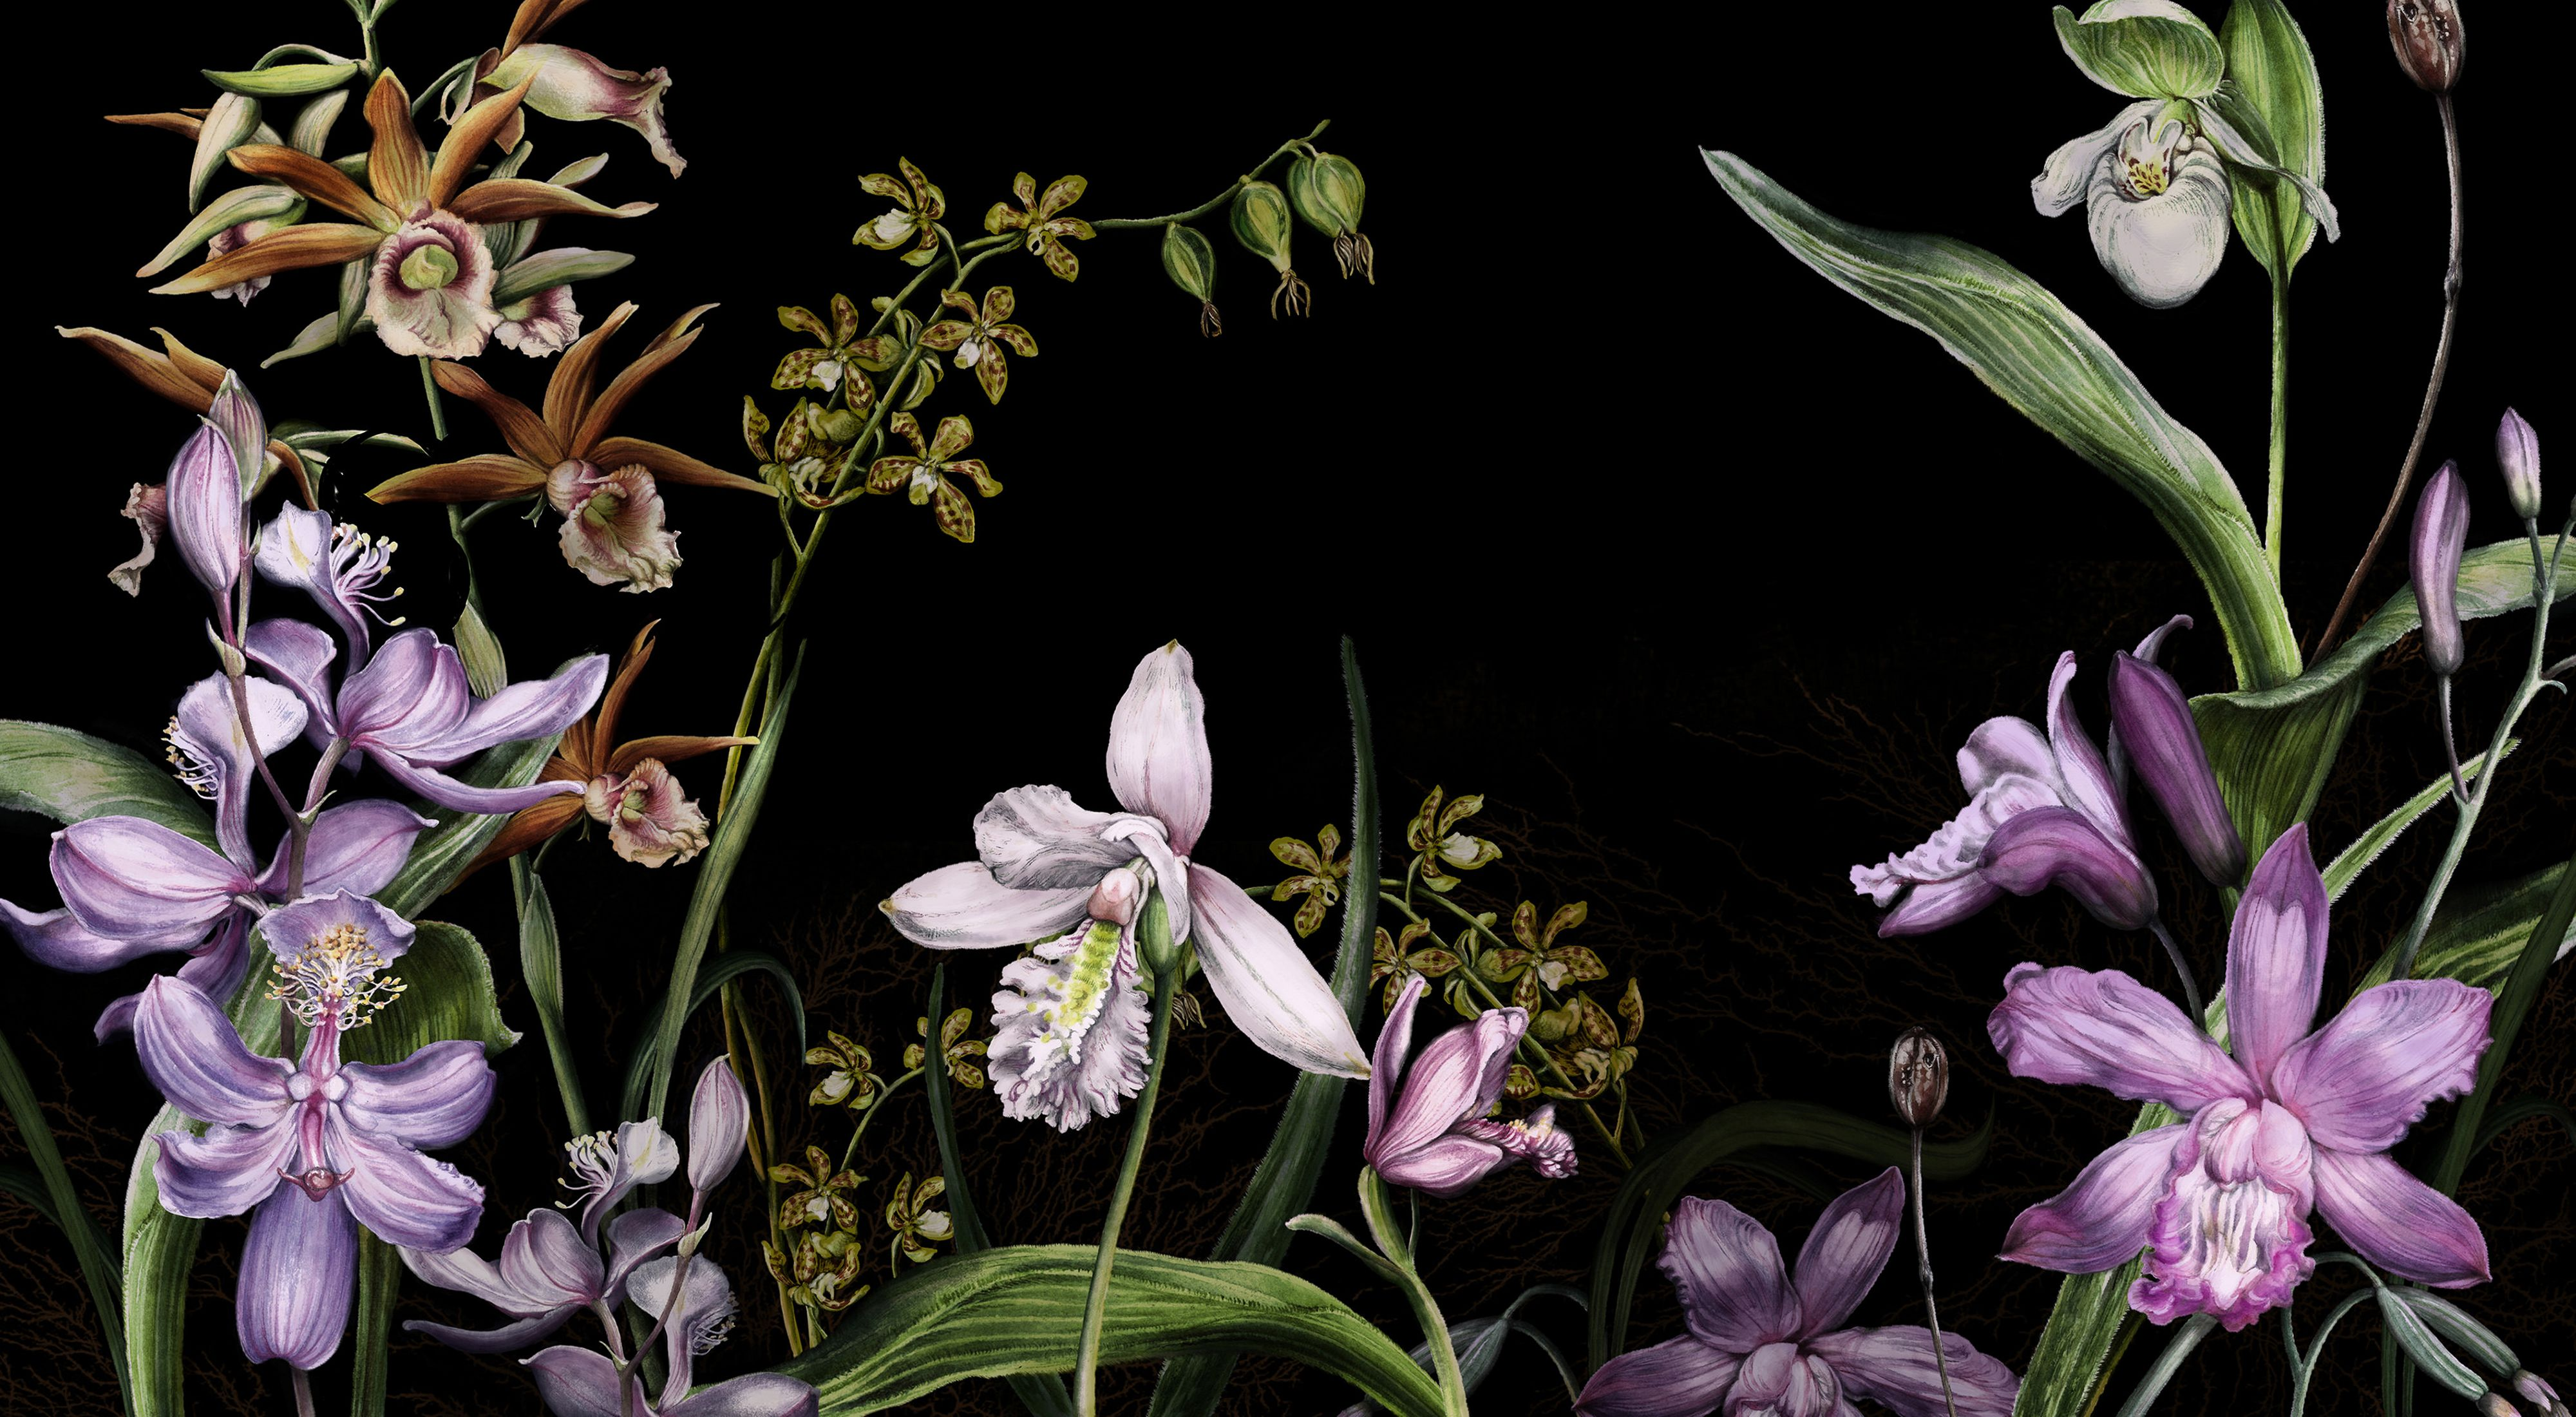 A color illustration of multiple species of orchids against a black background